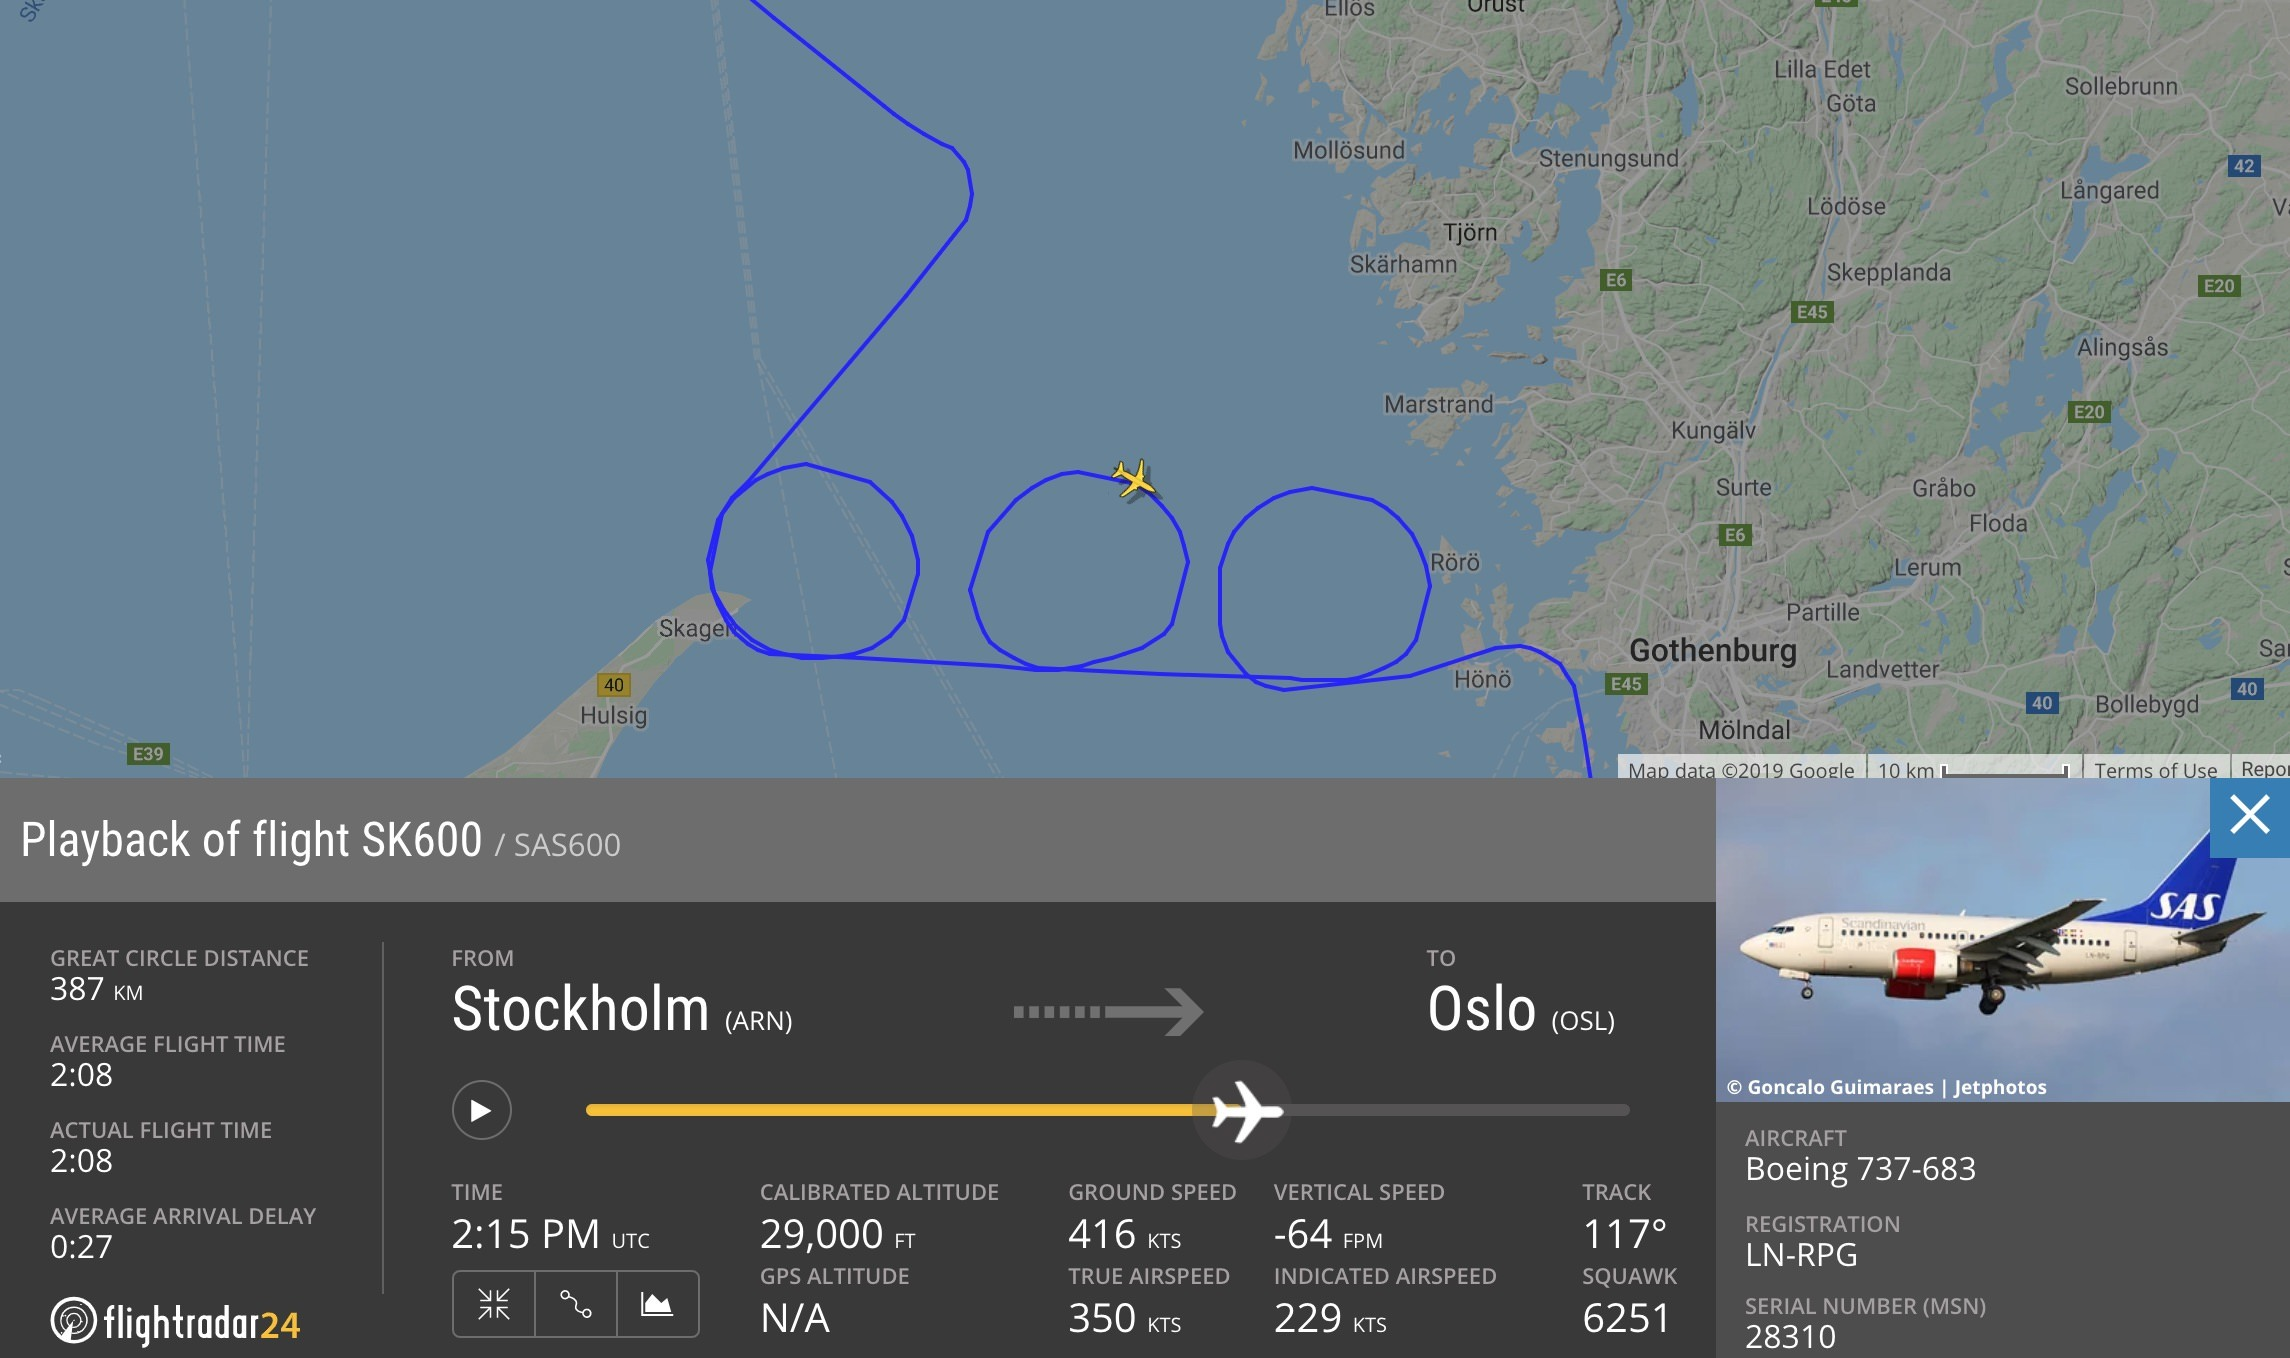 SAS celebrates its 737-600 fleet by drawing a 600 in the sky